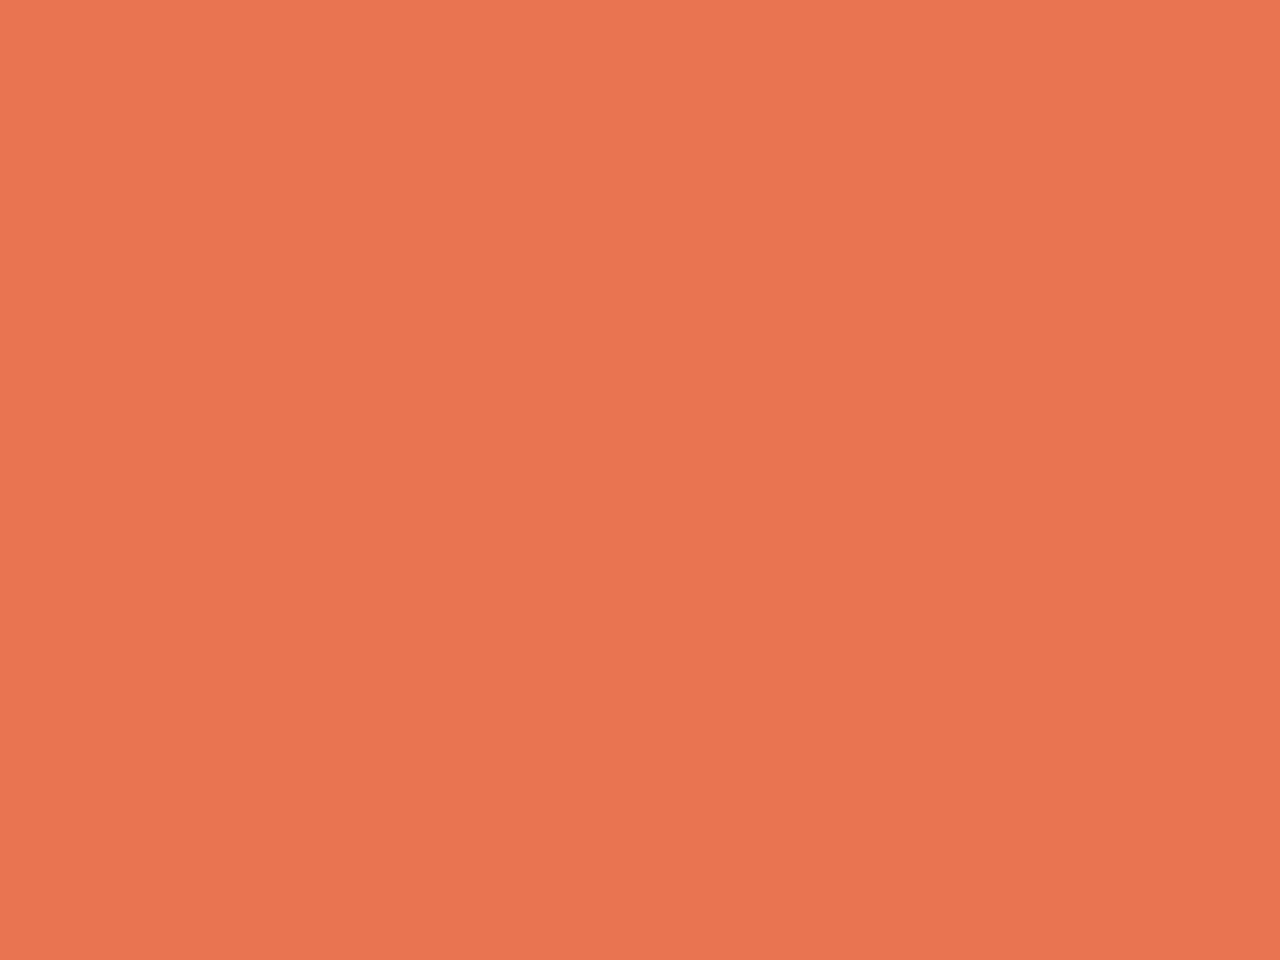 1280x960 Light Red Ochre Solid Color Background